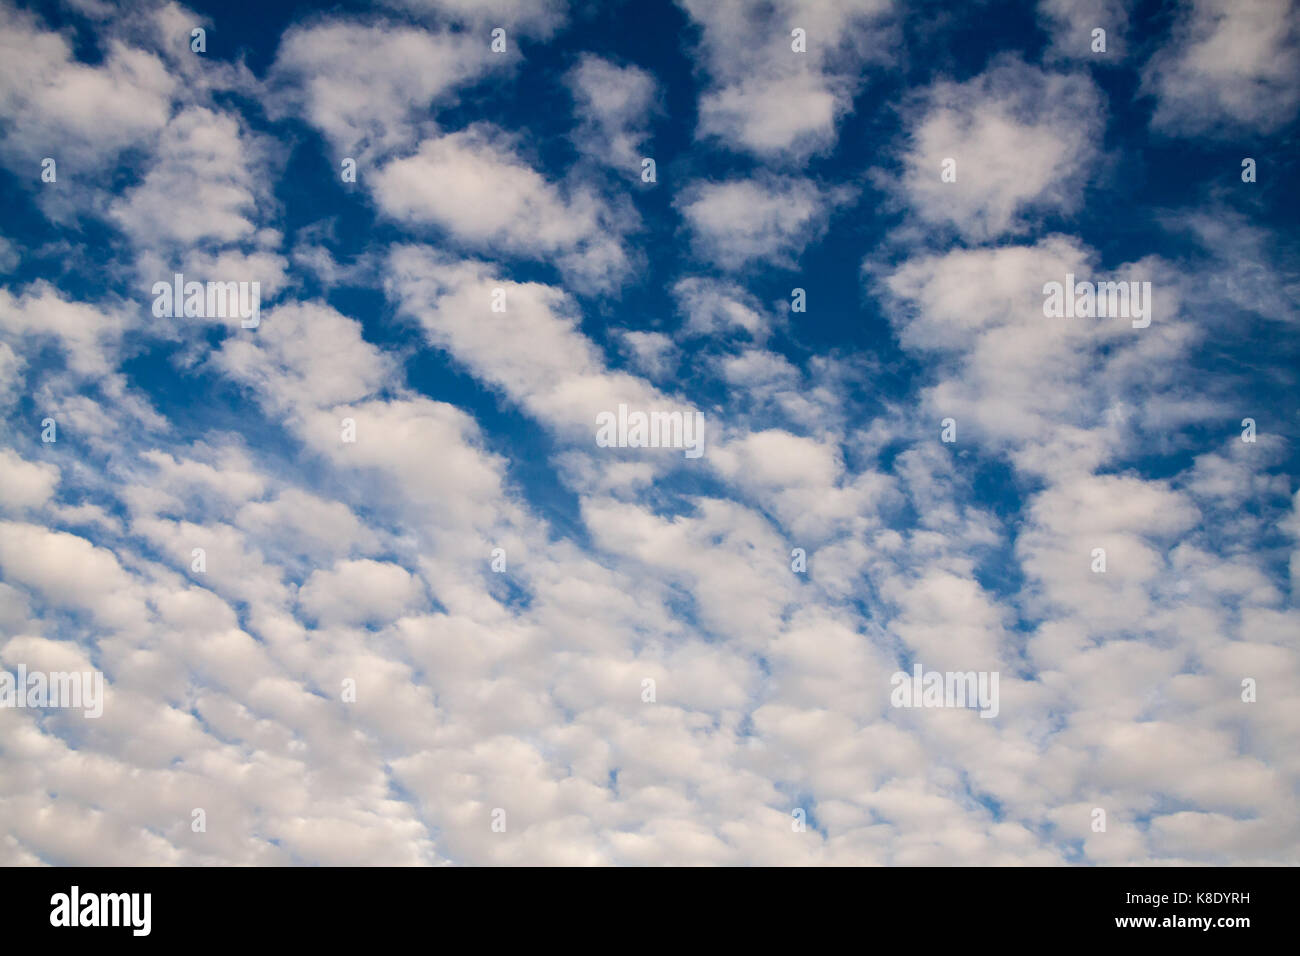 Fluffy Clouds in Bright Blue Sky, Lisbon - Stock Image